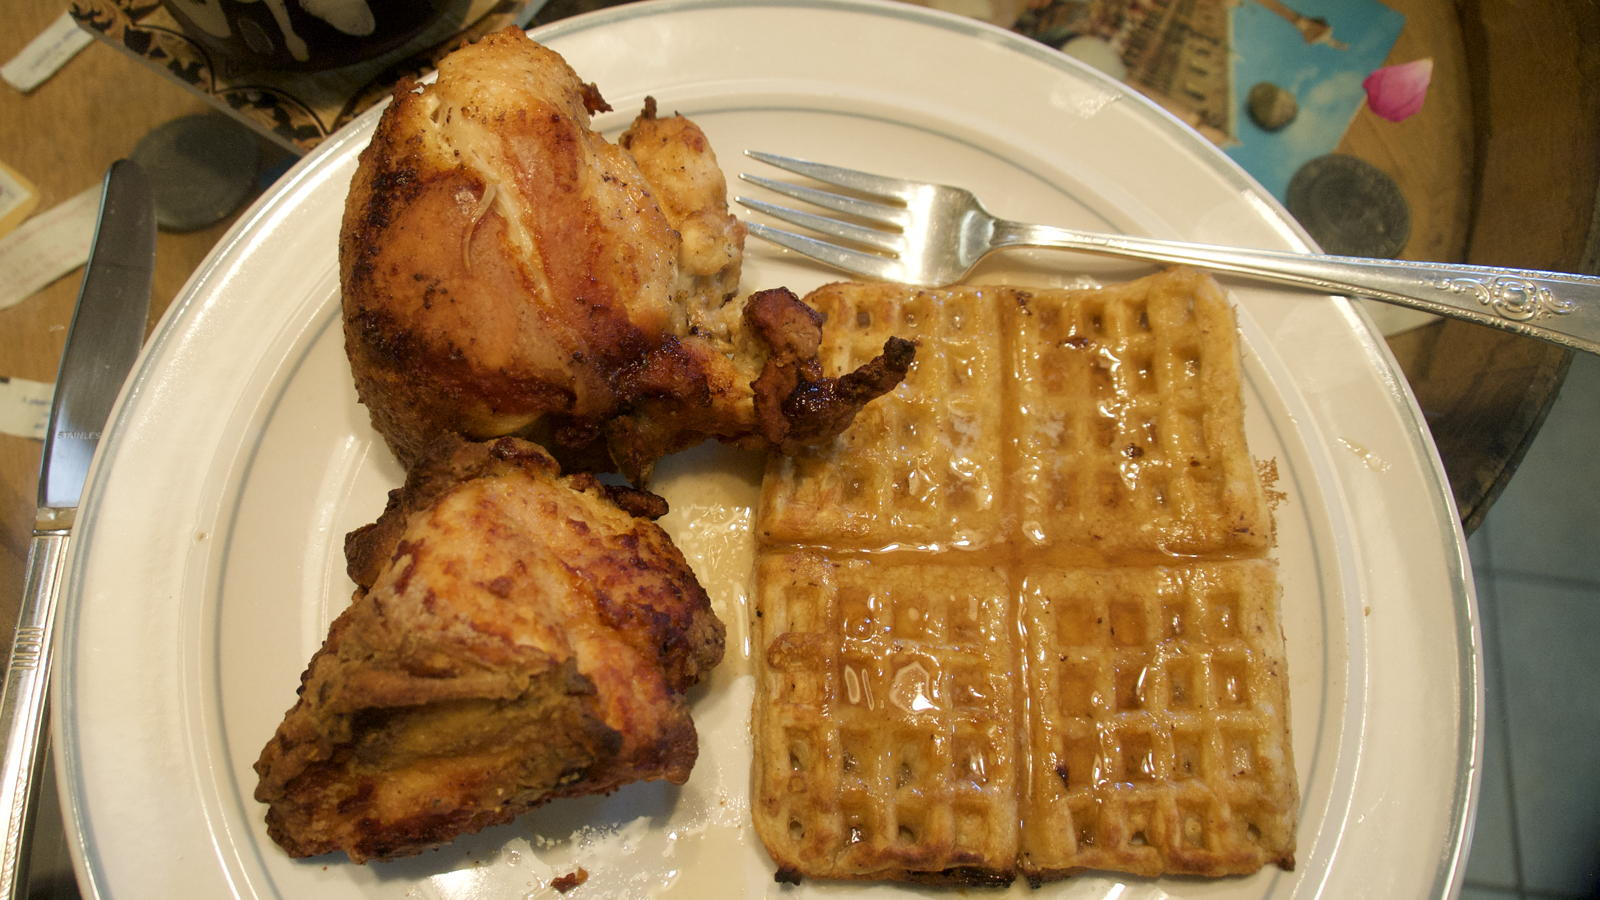 Chicken and homemade waffles